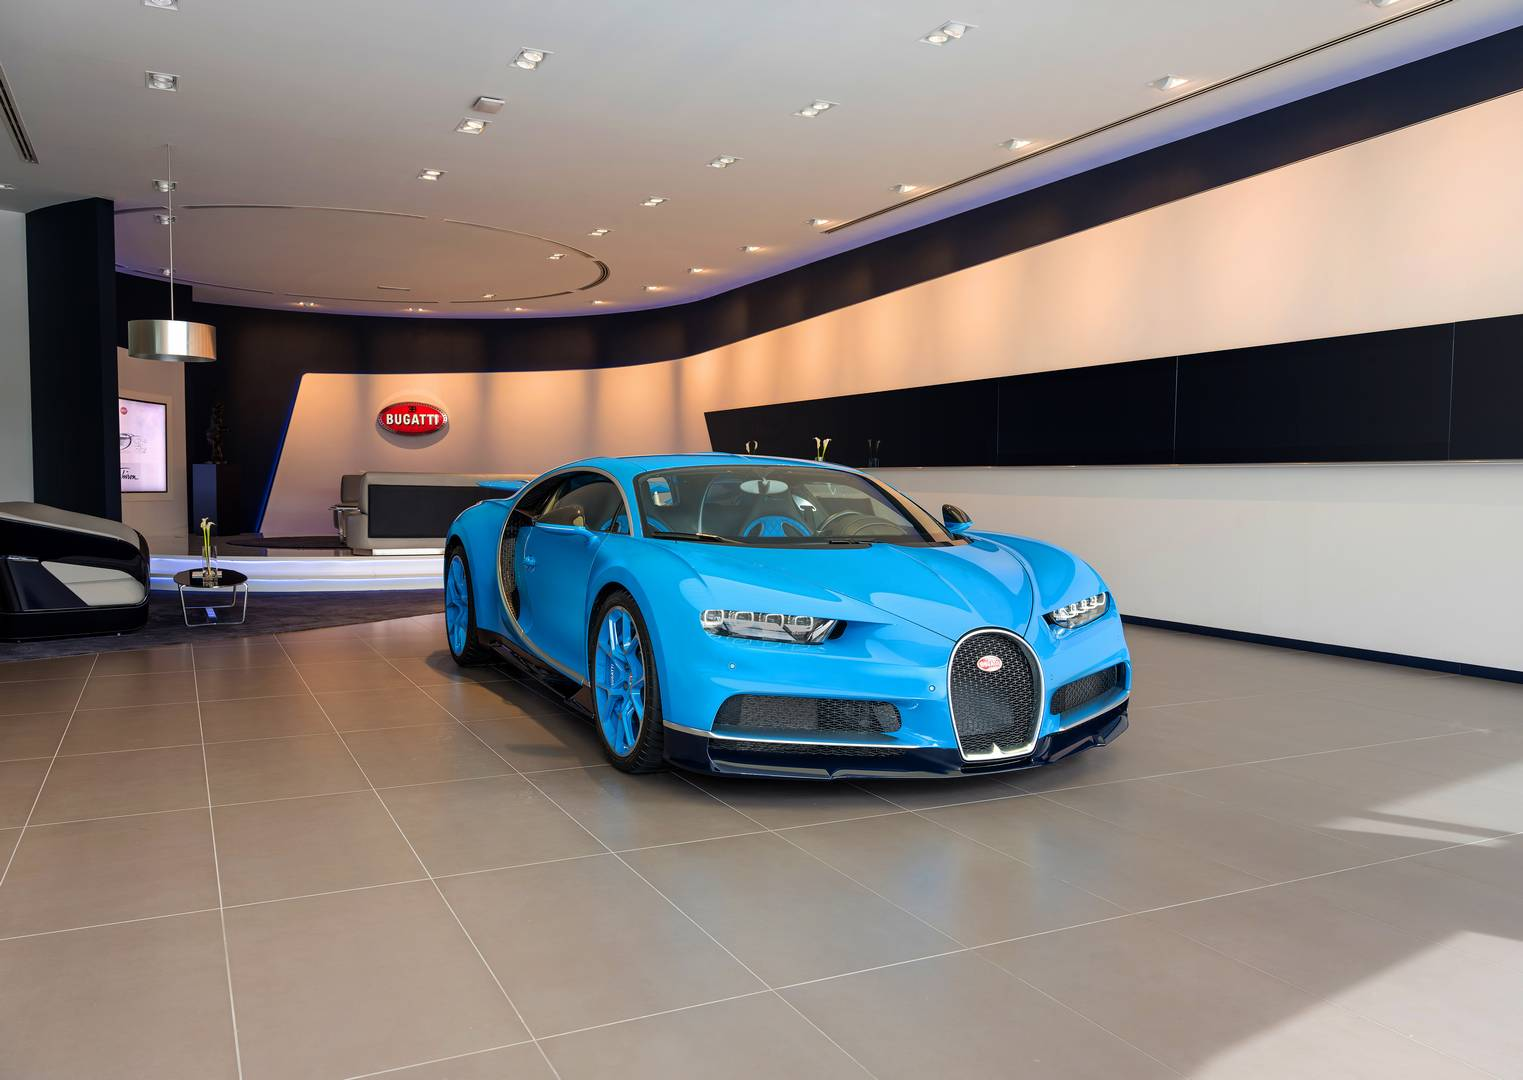 Largest Bugatti Showroom in Dubai Opened